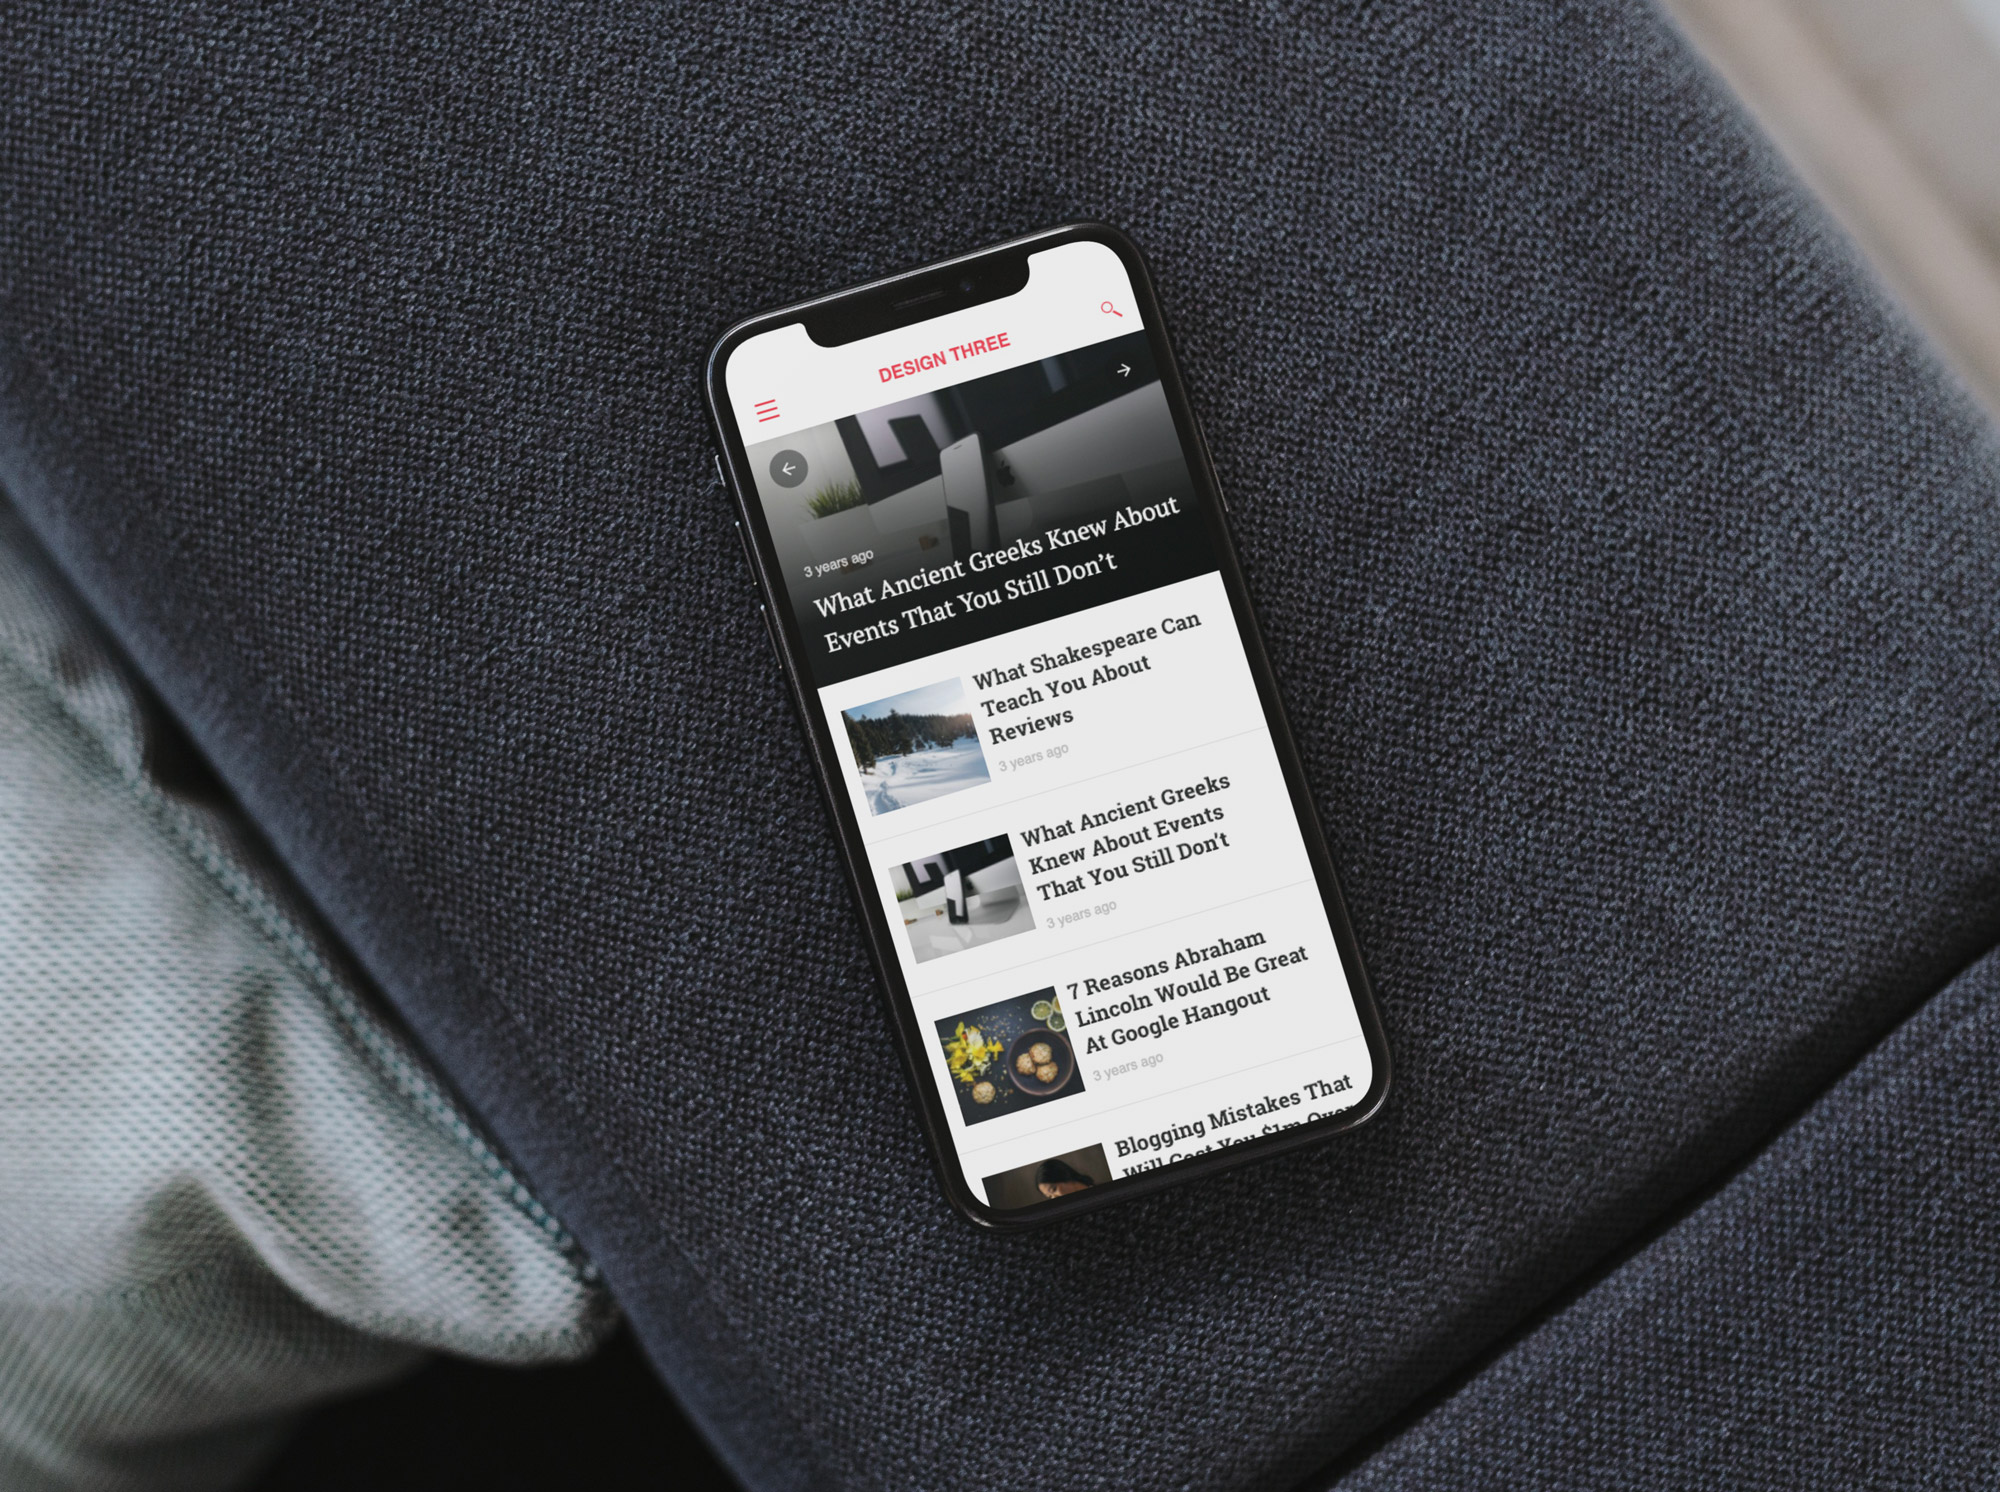 Blog site displayed on a mobile device